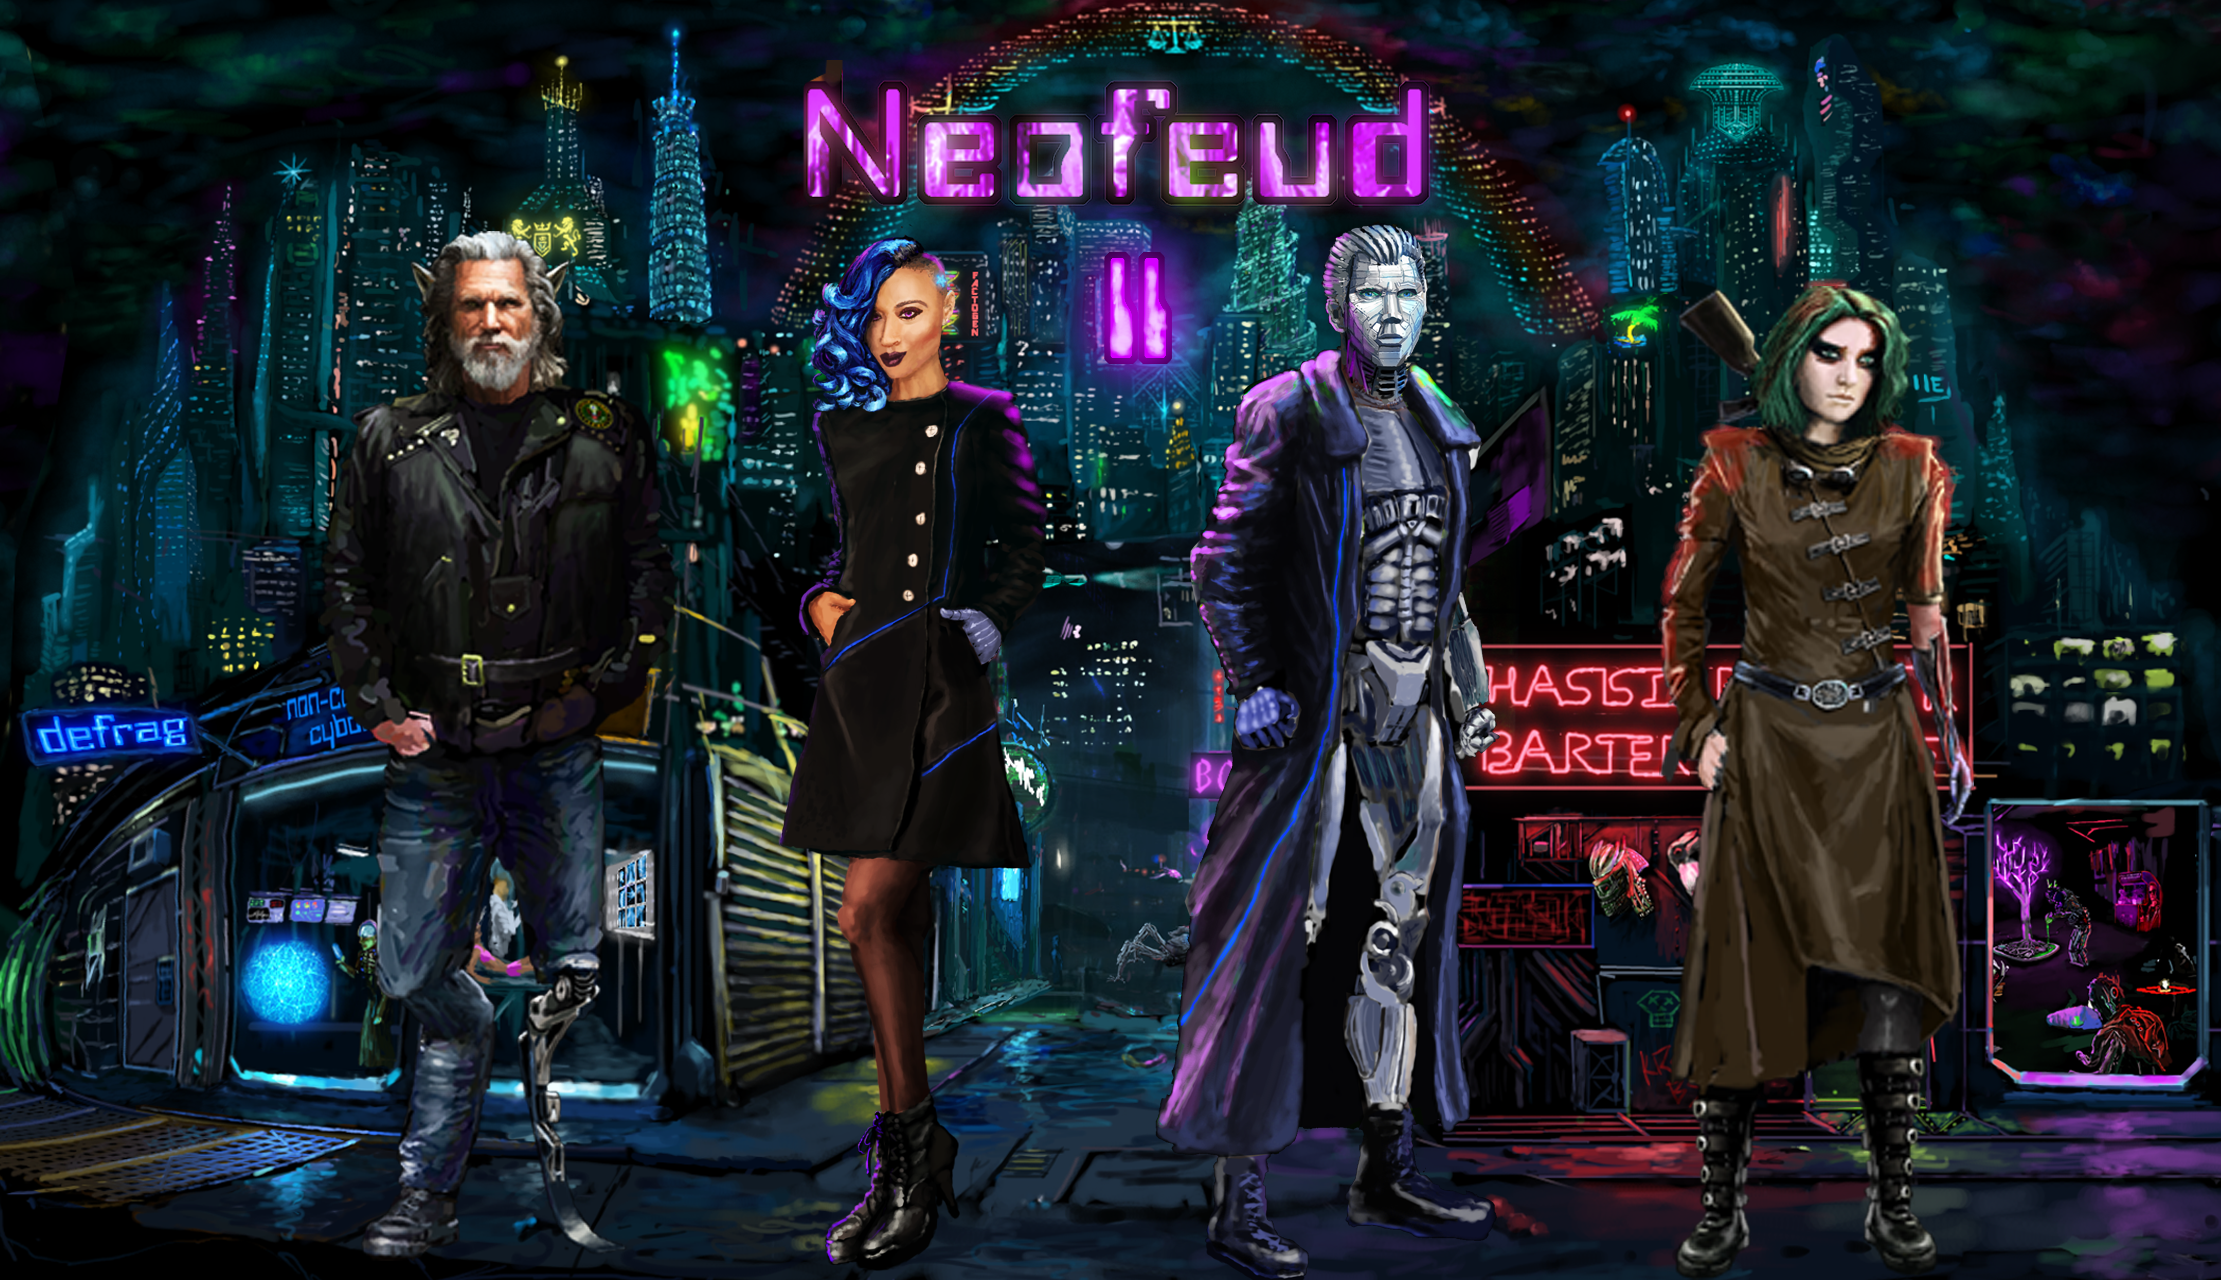 Neofeud 2